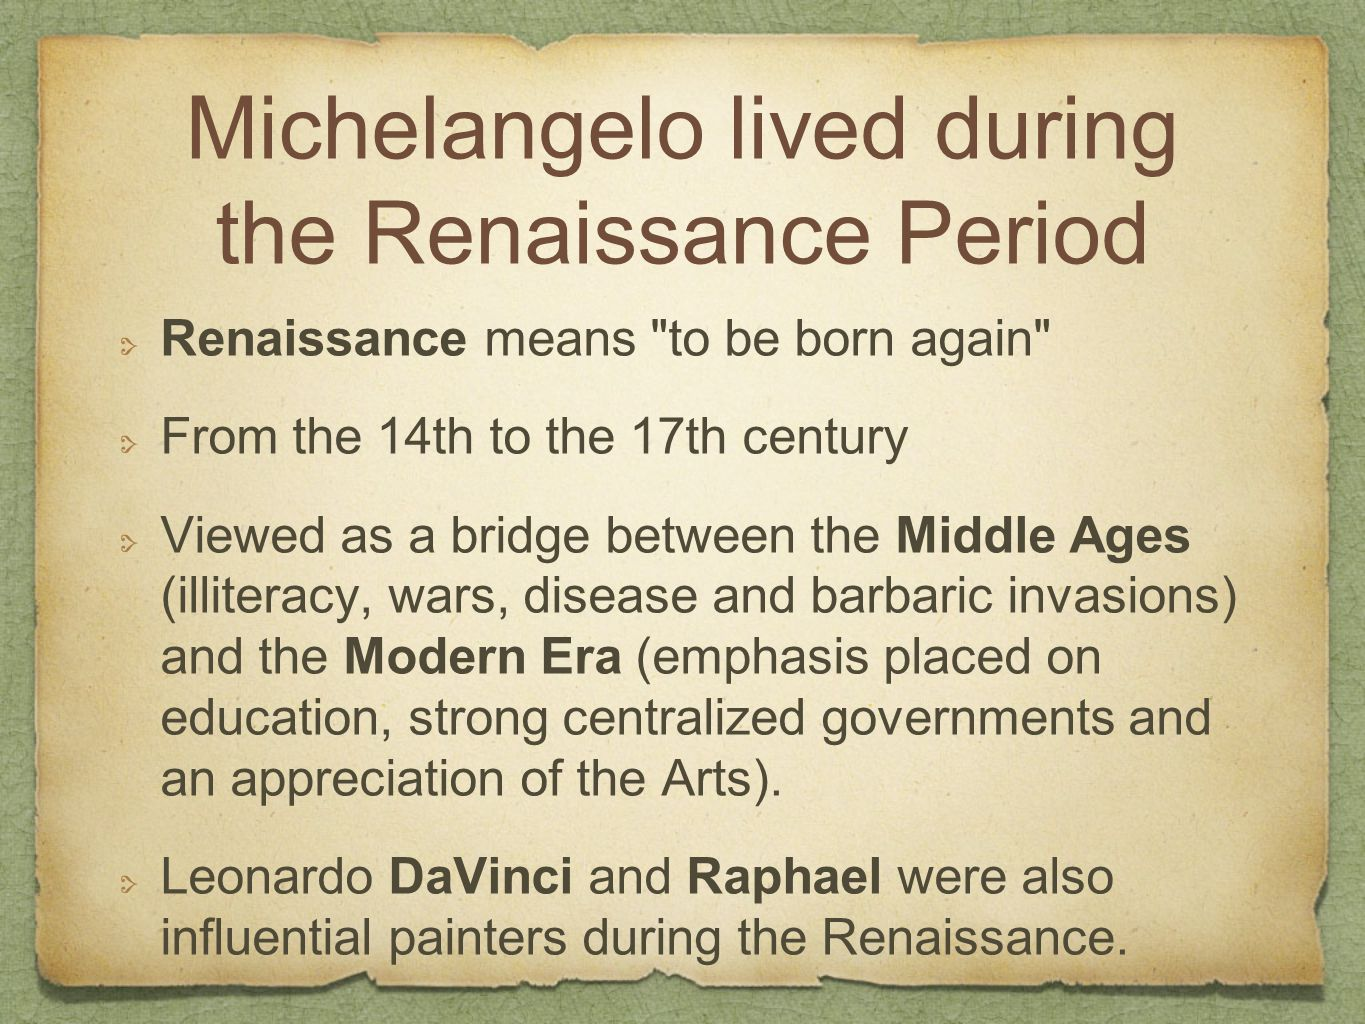 Michelangelo lived during the Renaissance Period Renaissance means to be born again From the 14th to the 17th century Viewed as a bridge between the Middle Ages (illiteracy, wars, disease and barbaric invasions) and the Modern Era (emphasis placed on education, strong centralized governments and an appreciation of the Arts).